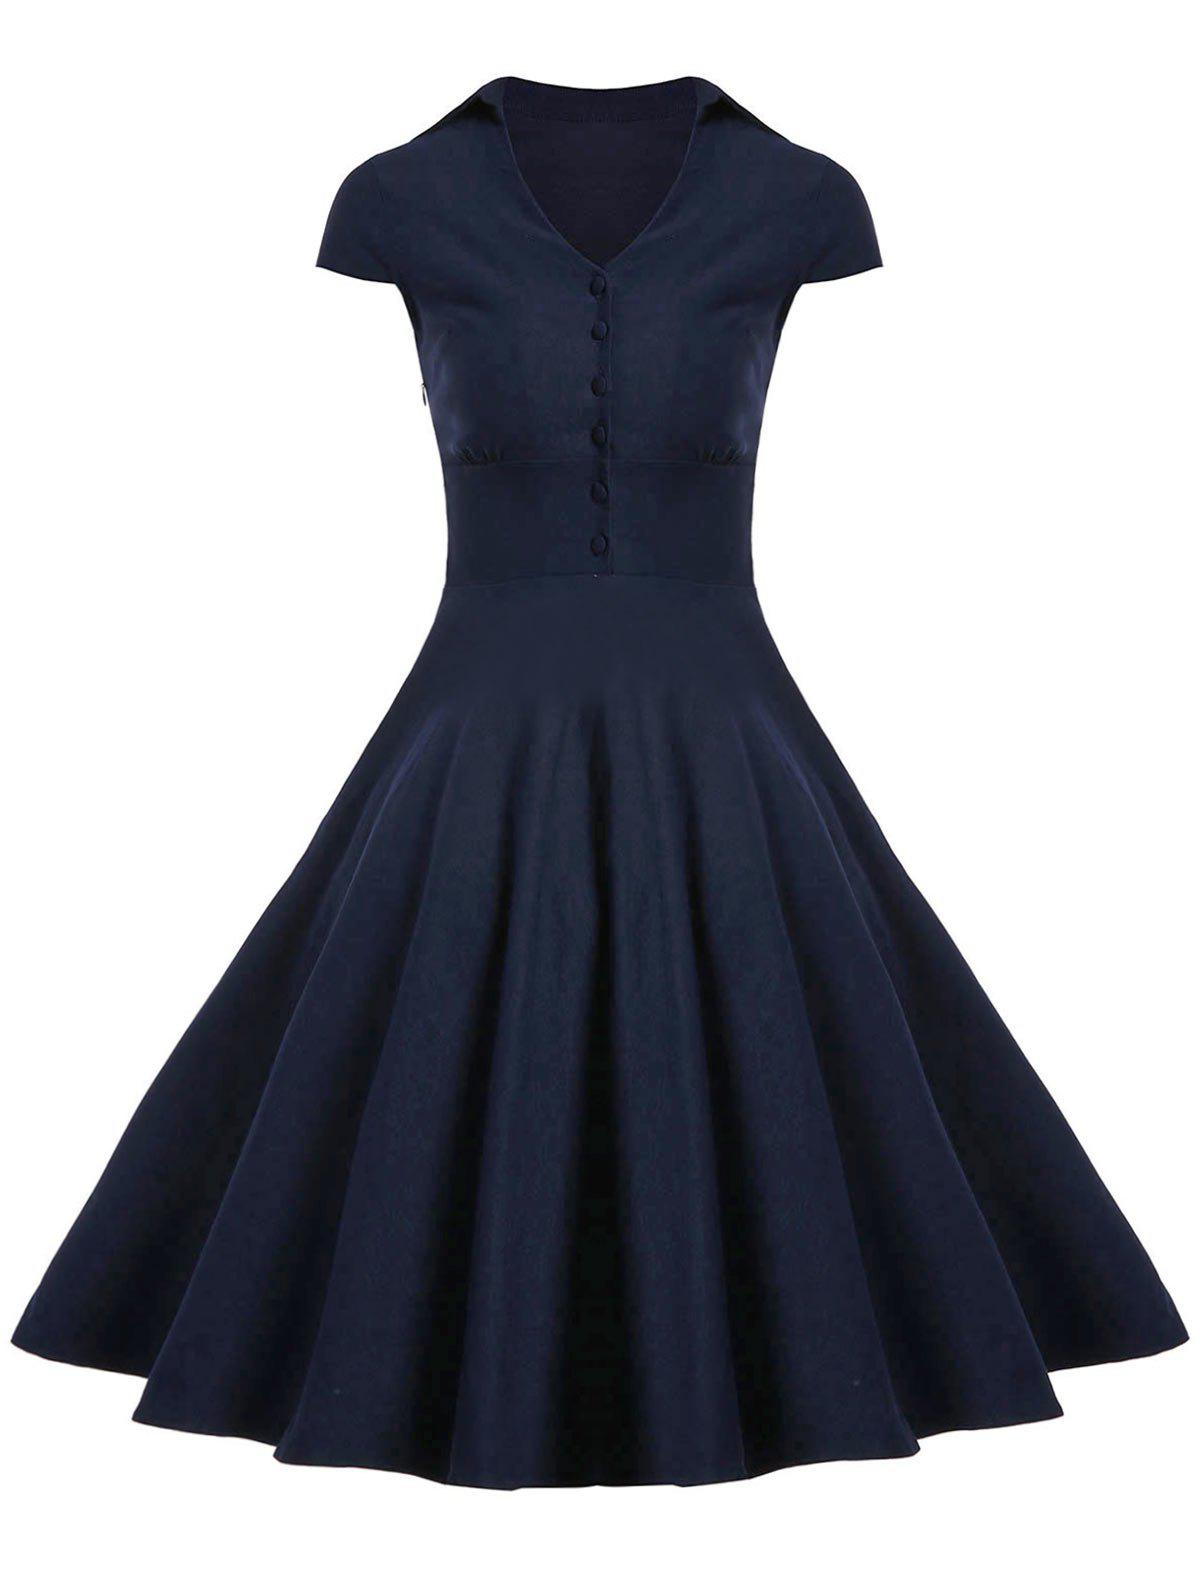 Cheap A Line Buttoned Vintage Corset Dress with Sleeves